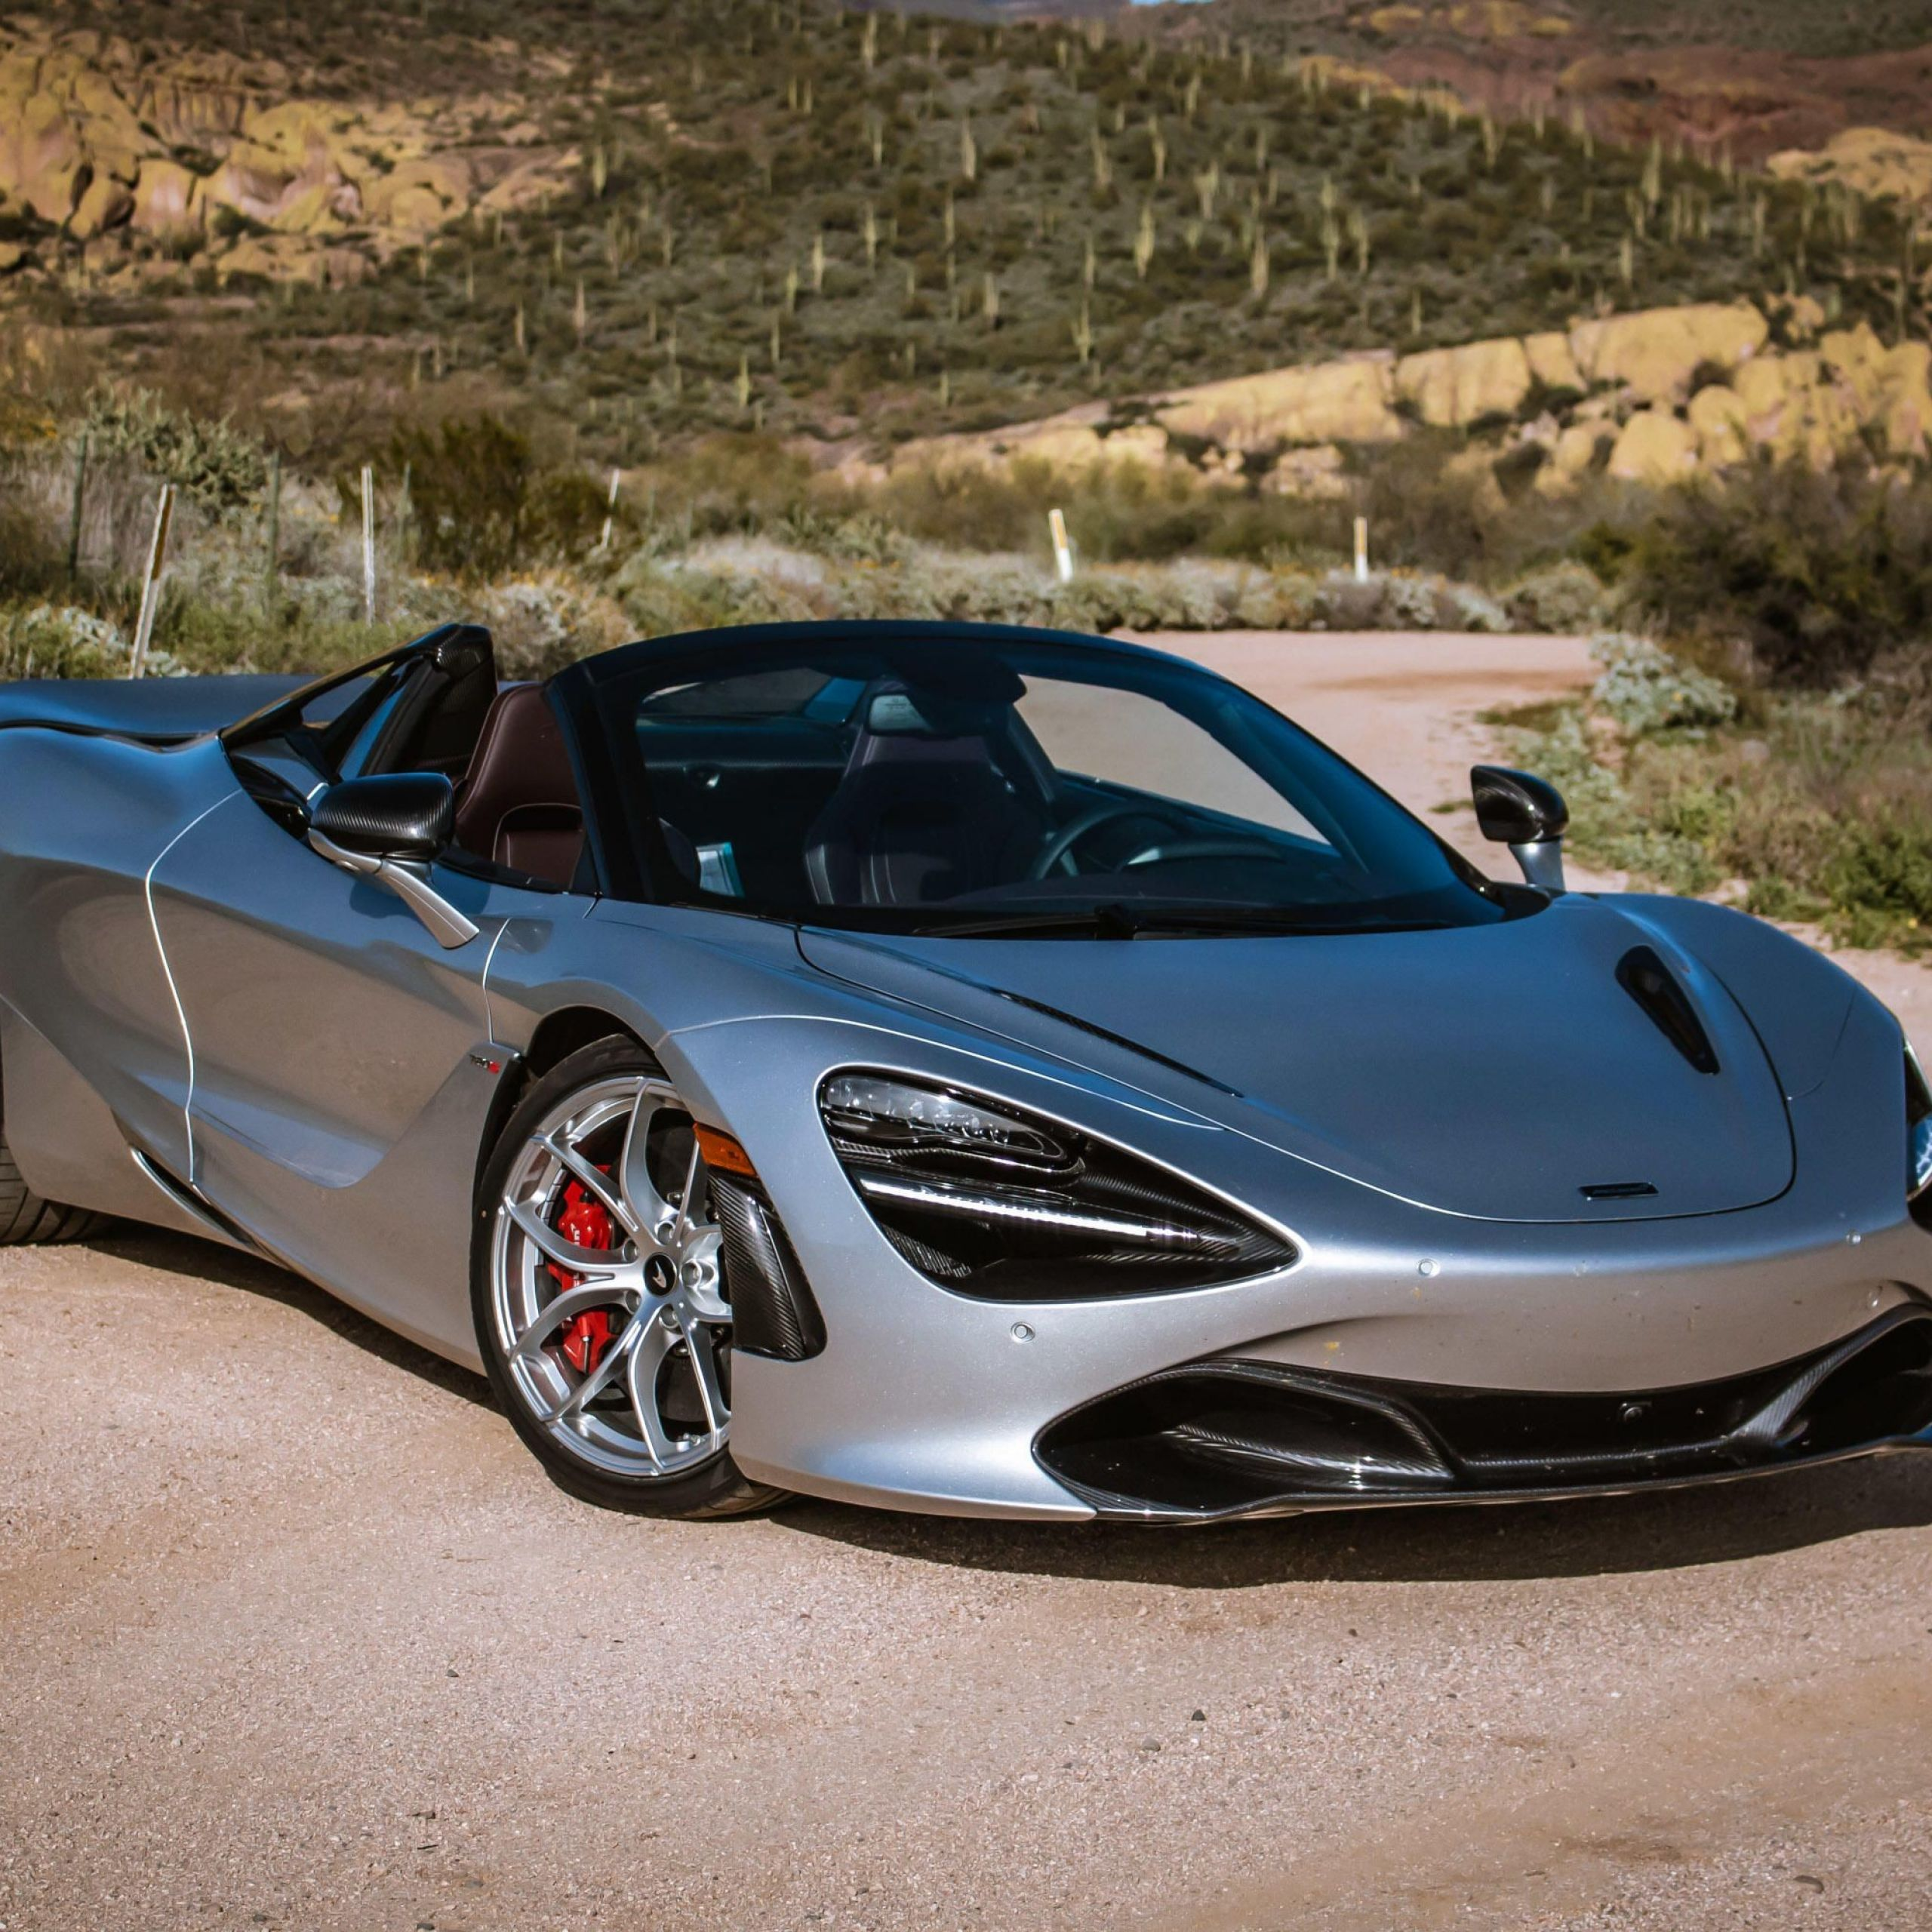 Tesla 2020 Awesome Mclaren 720s Tesla Mobile Service and More Roadshow S Week